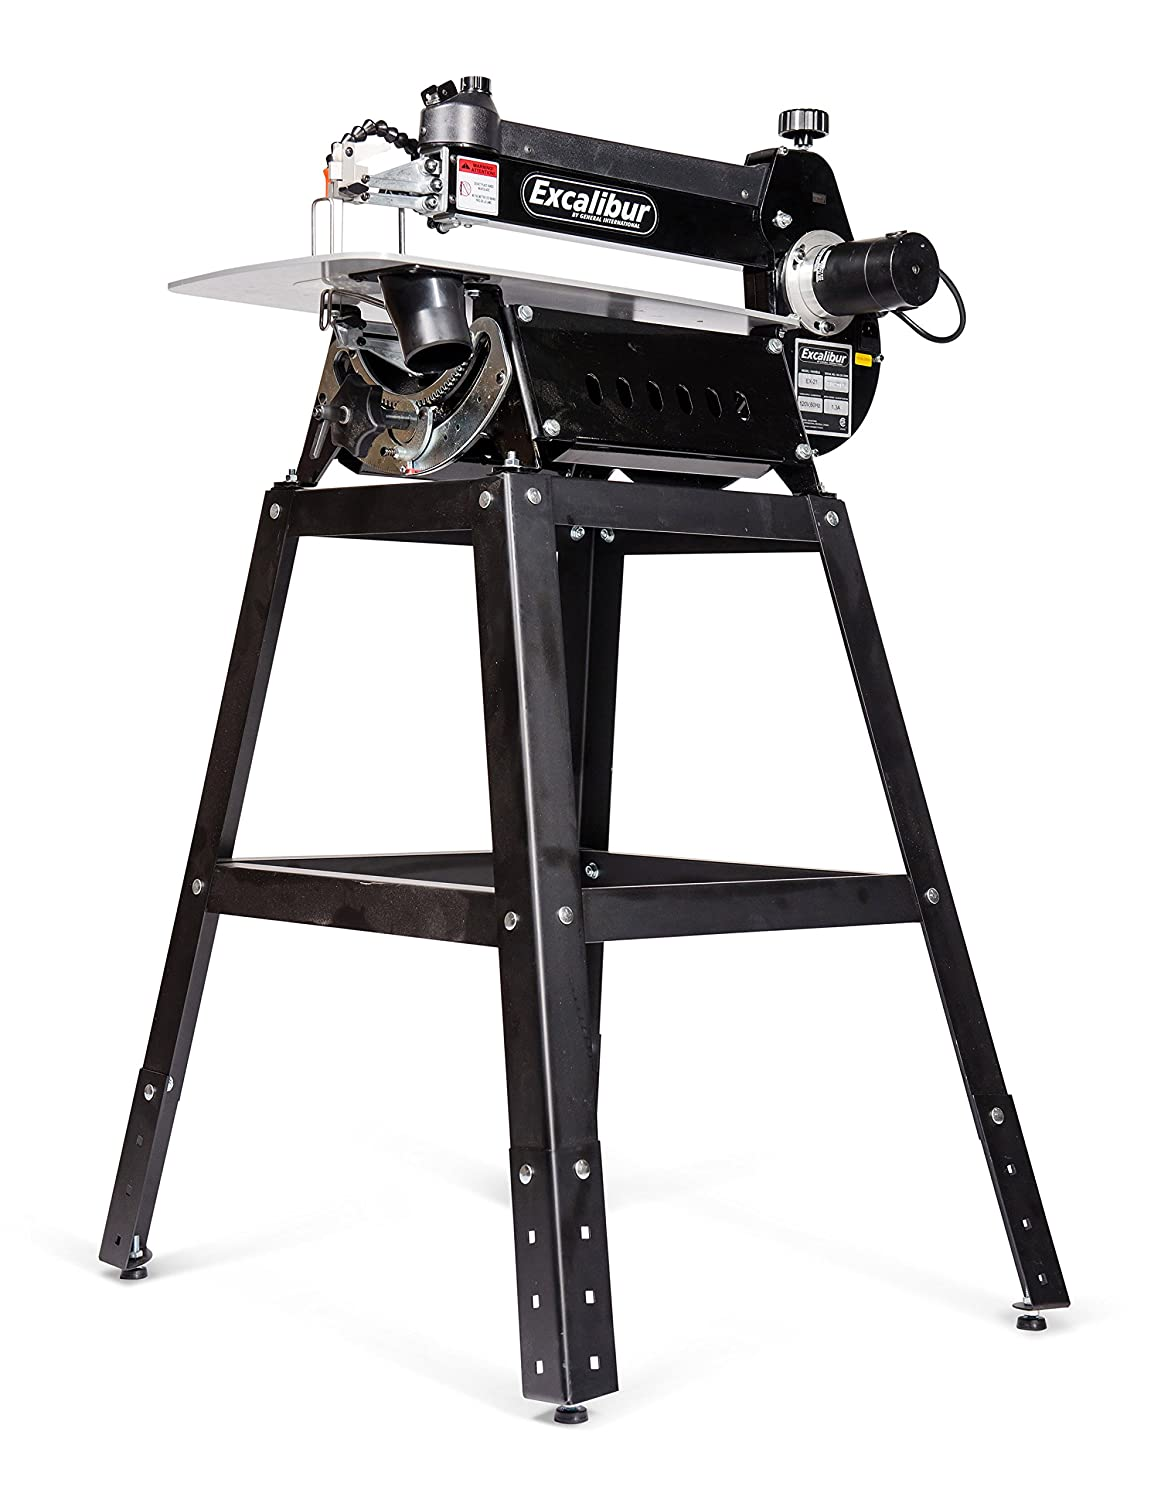 Best Excalibur Scroll Saw